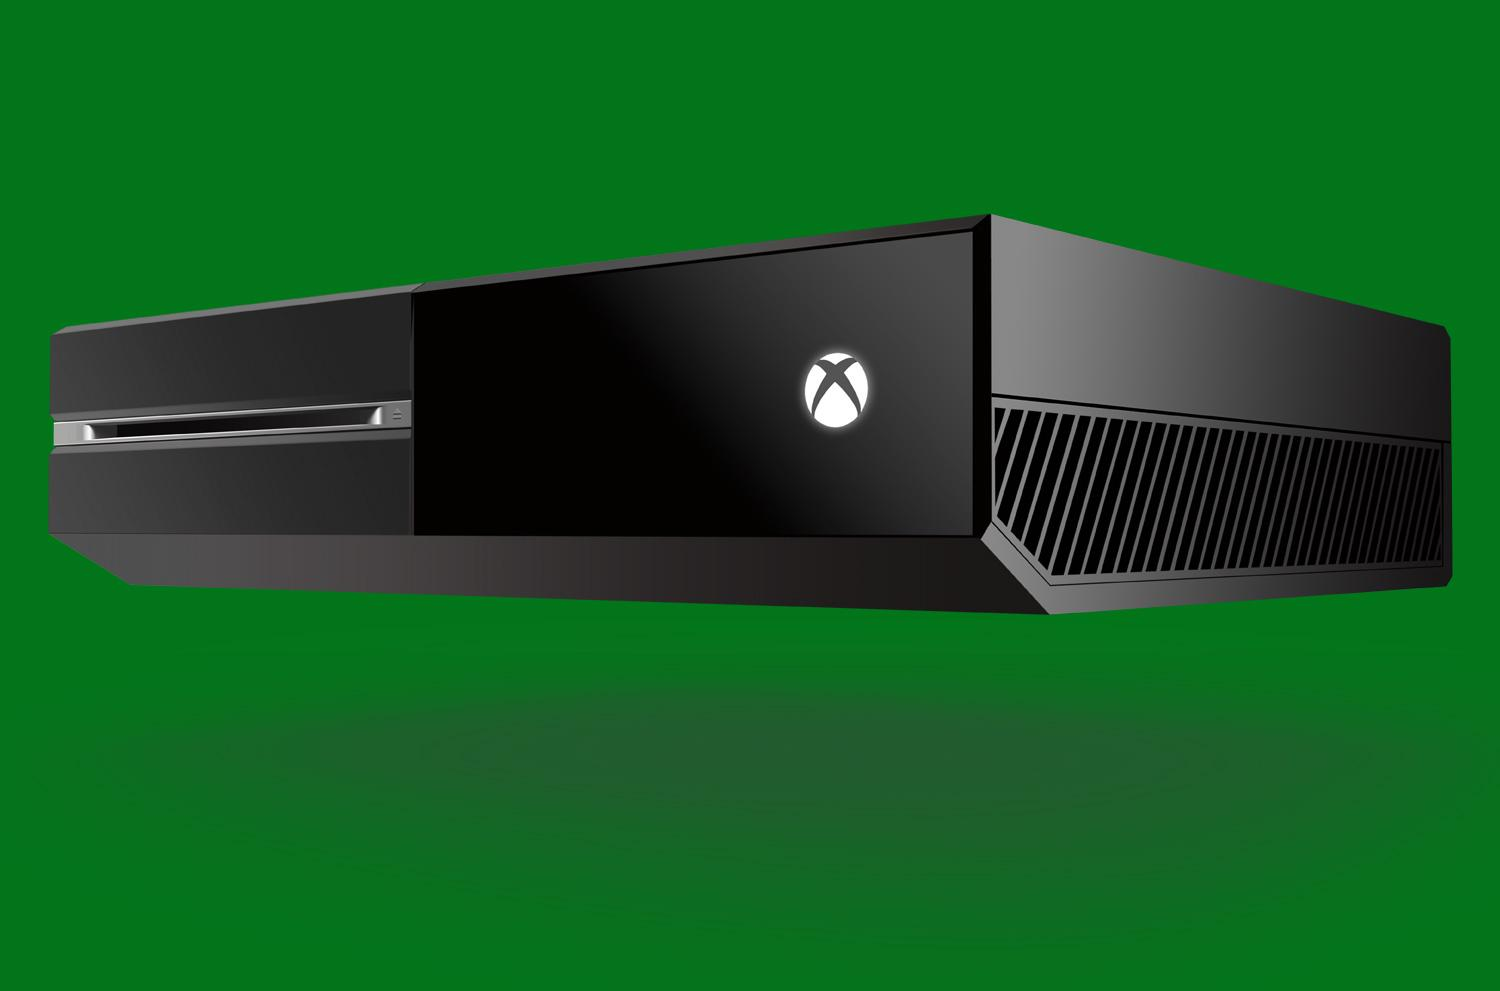 Xbox One games can use Xbox Live cloud to triple performanceXbox One